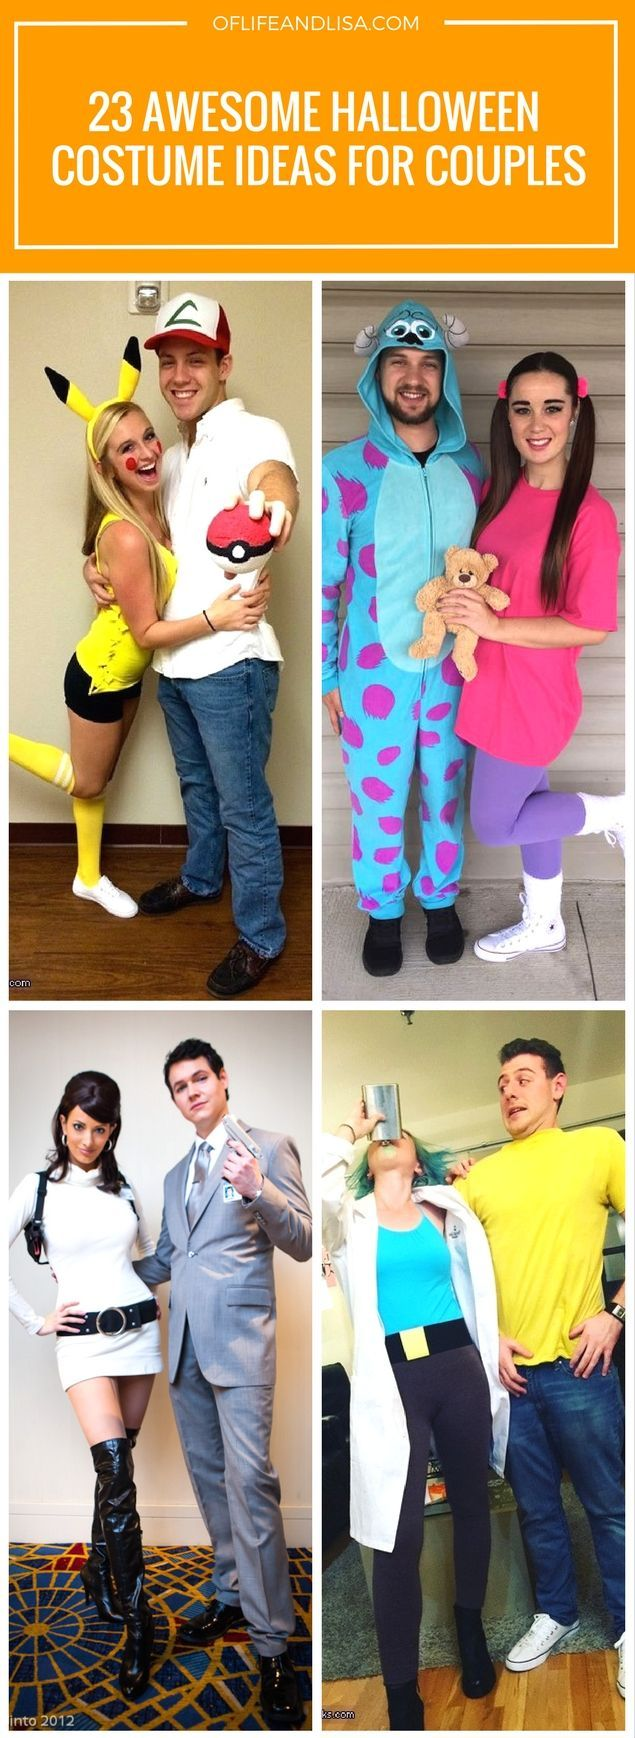 23 Halloween Costumes for Couples That Scream Relationship Goals